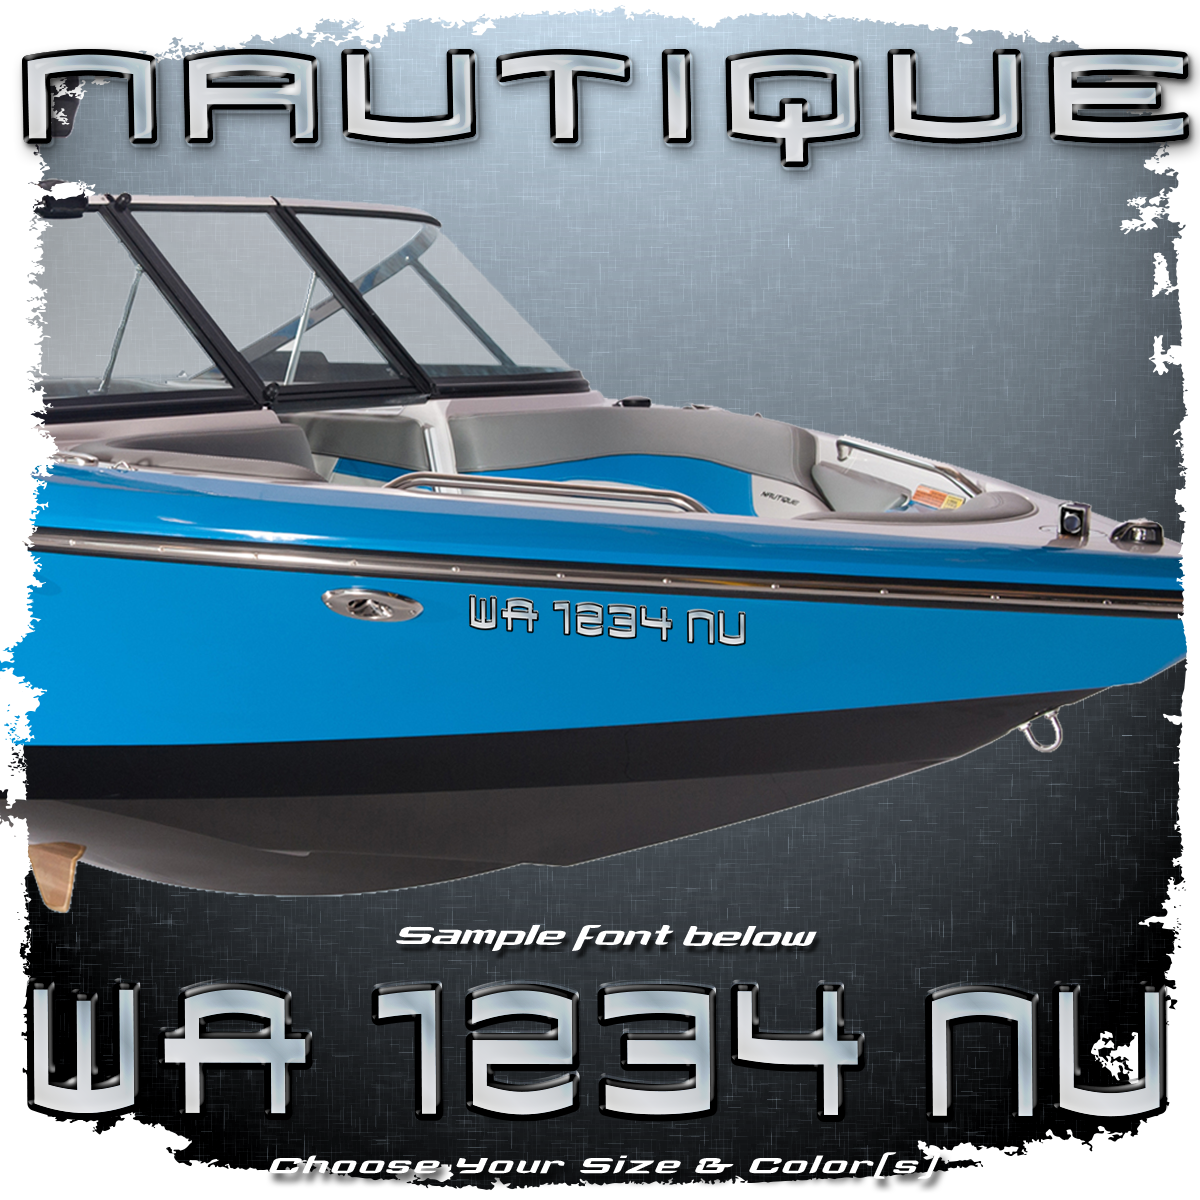 Super Air Nautique 210 Font Registration, 2003, Choose Your Own Colors (2 included)